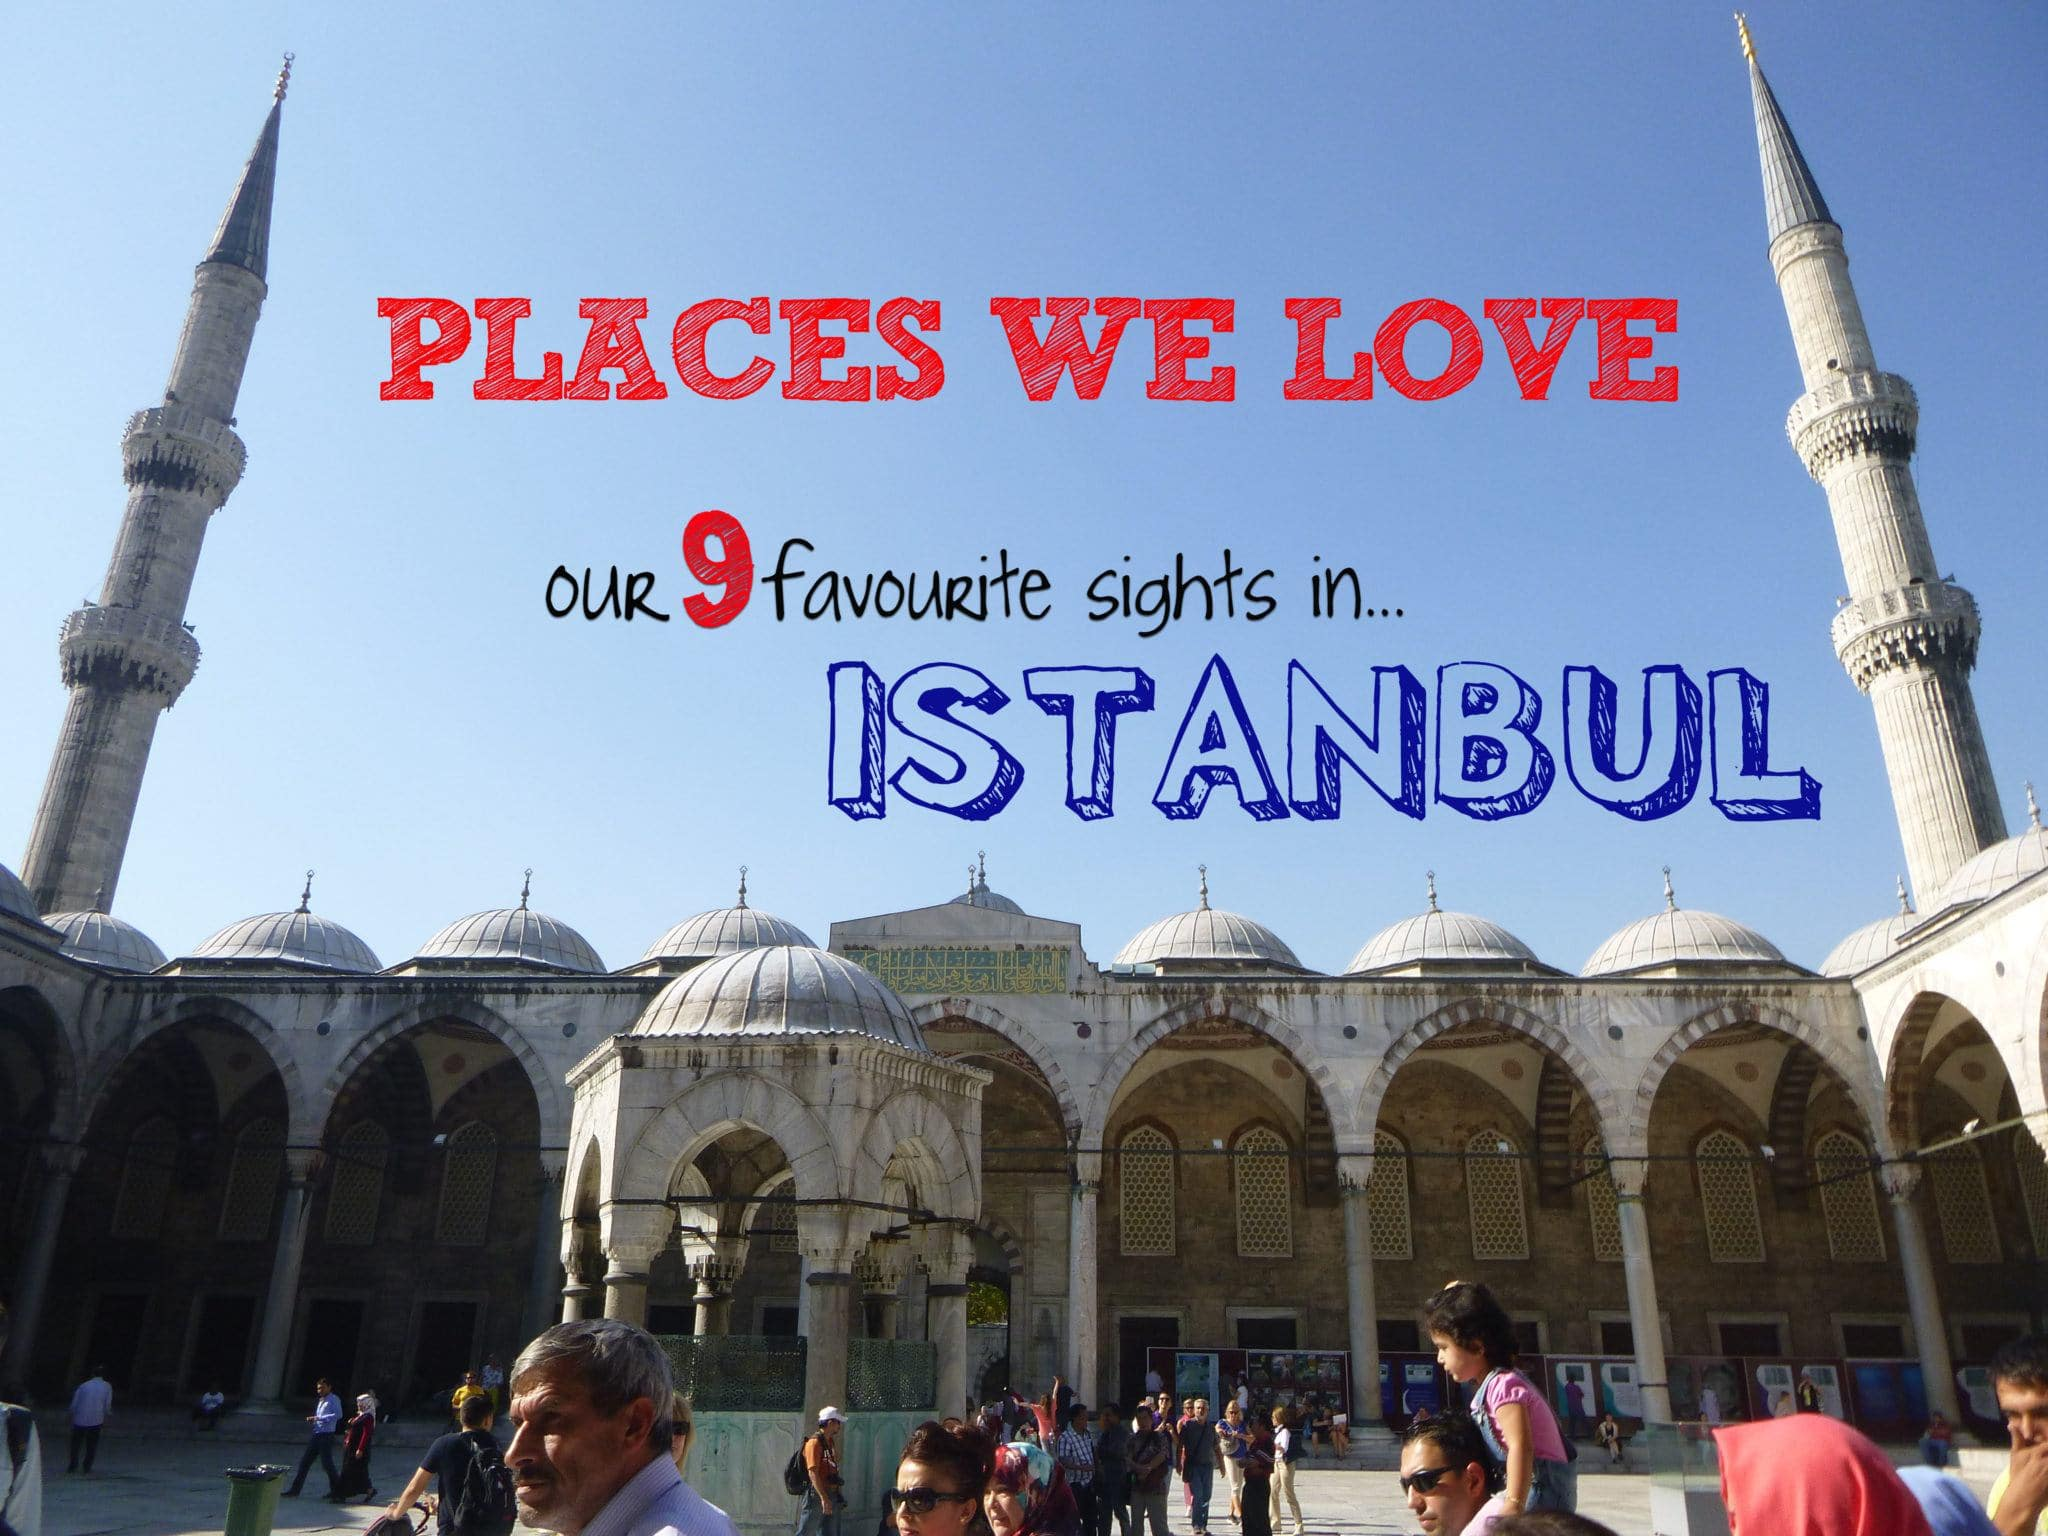 The best sights in Istanbul: Places we Love!